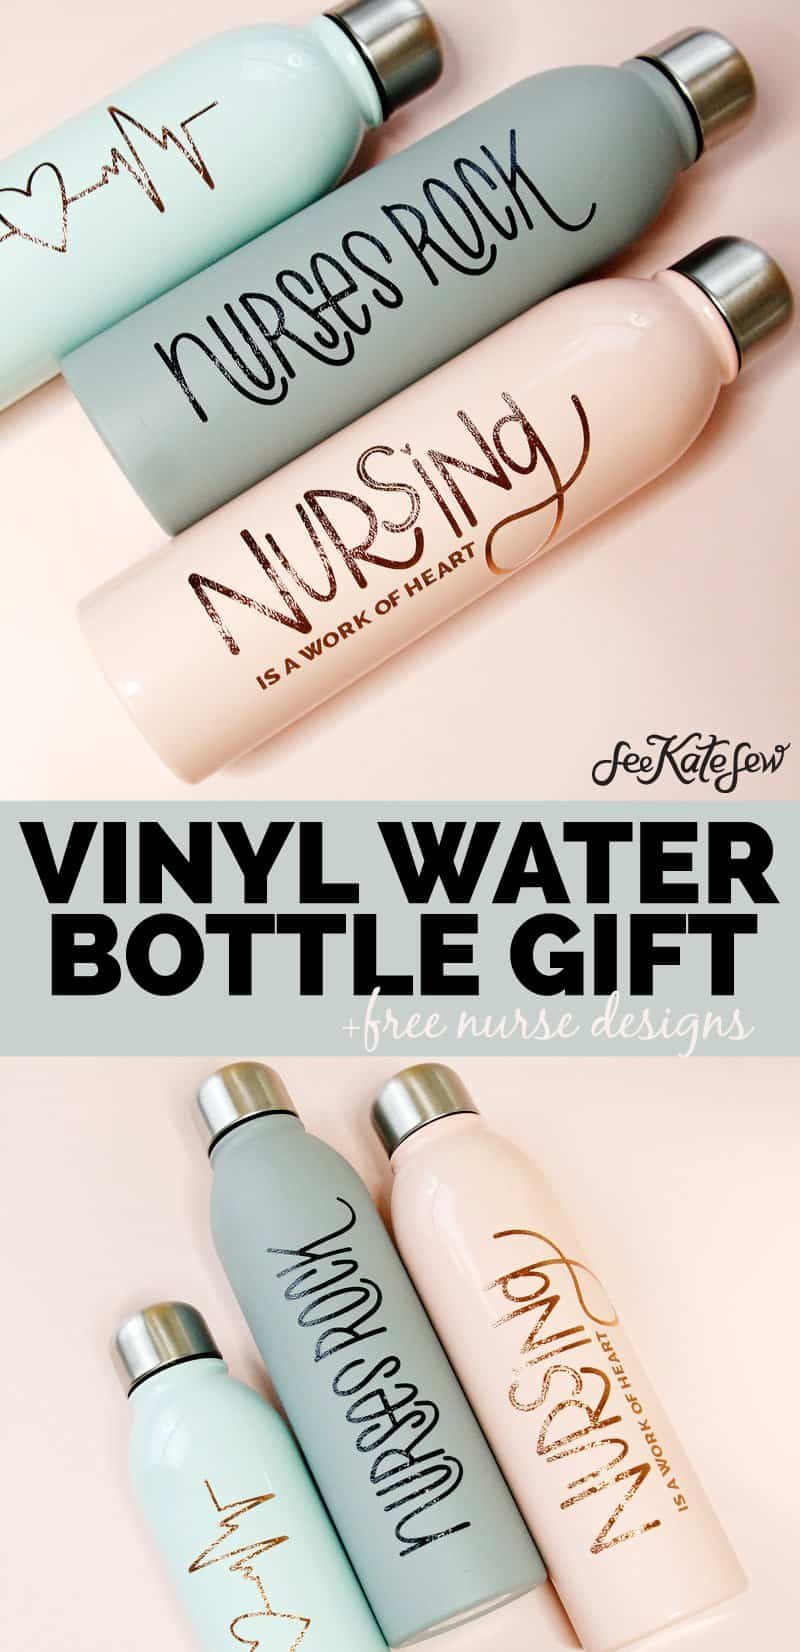 Vinyl Water Bottle Gifts for Friends and Coworkers